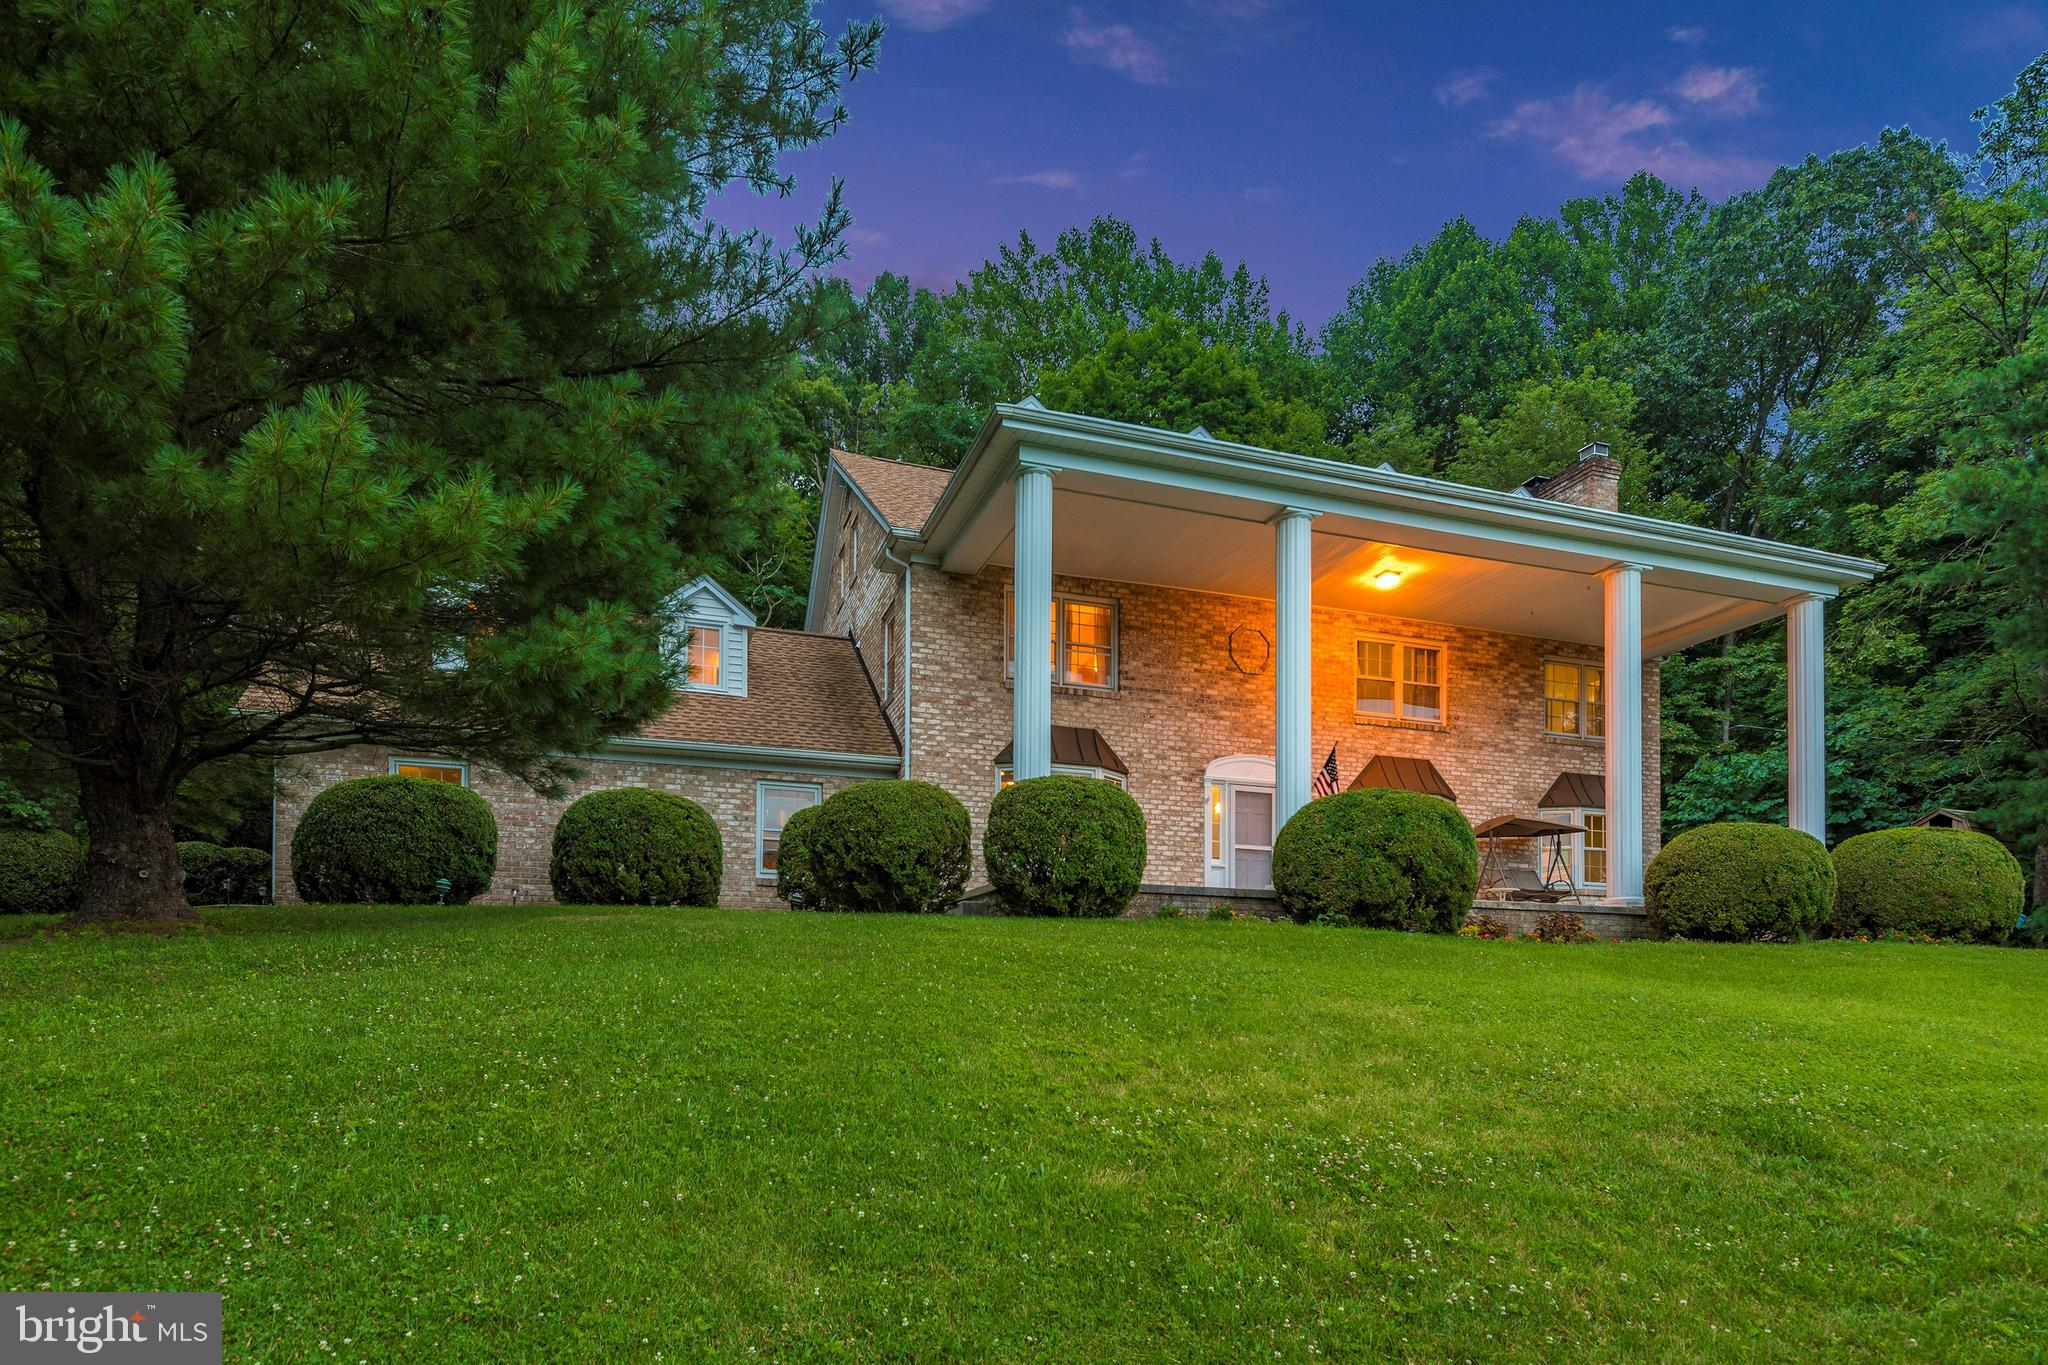 168 COUNTRY CLUB TRAIL, FAIRFIELD, PA 17320